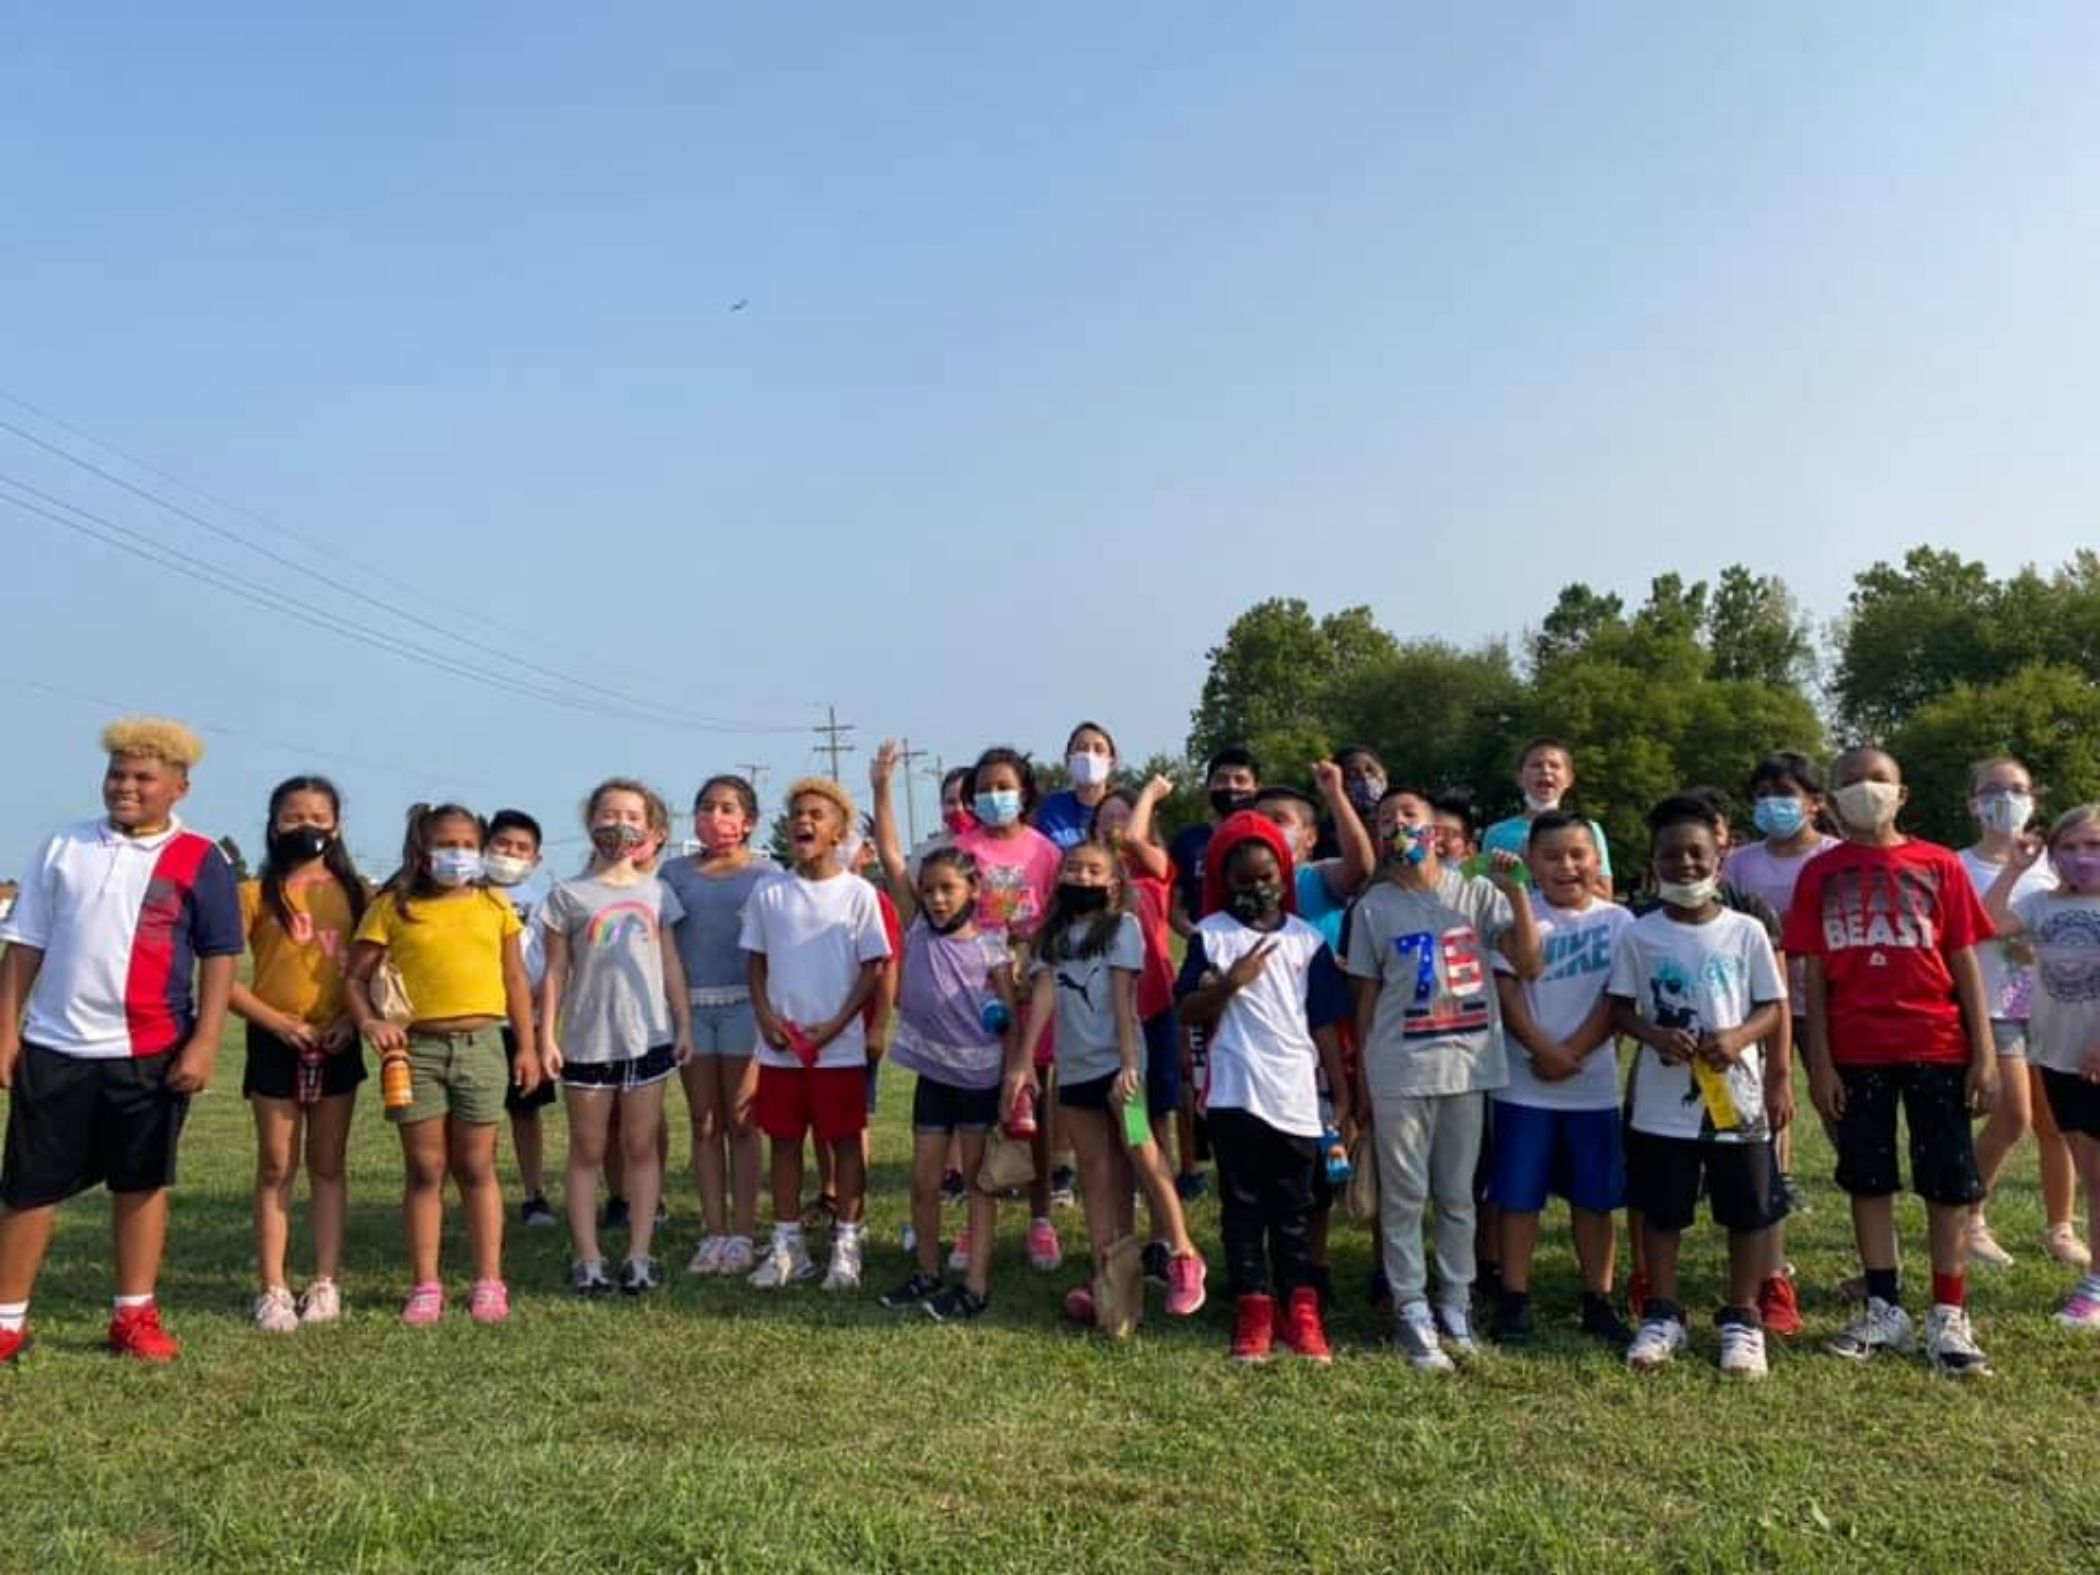 Students pose following cross country meet